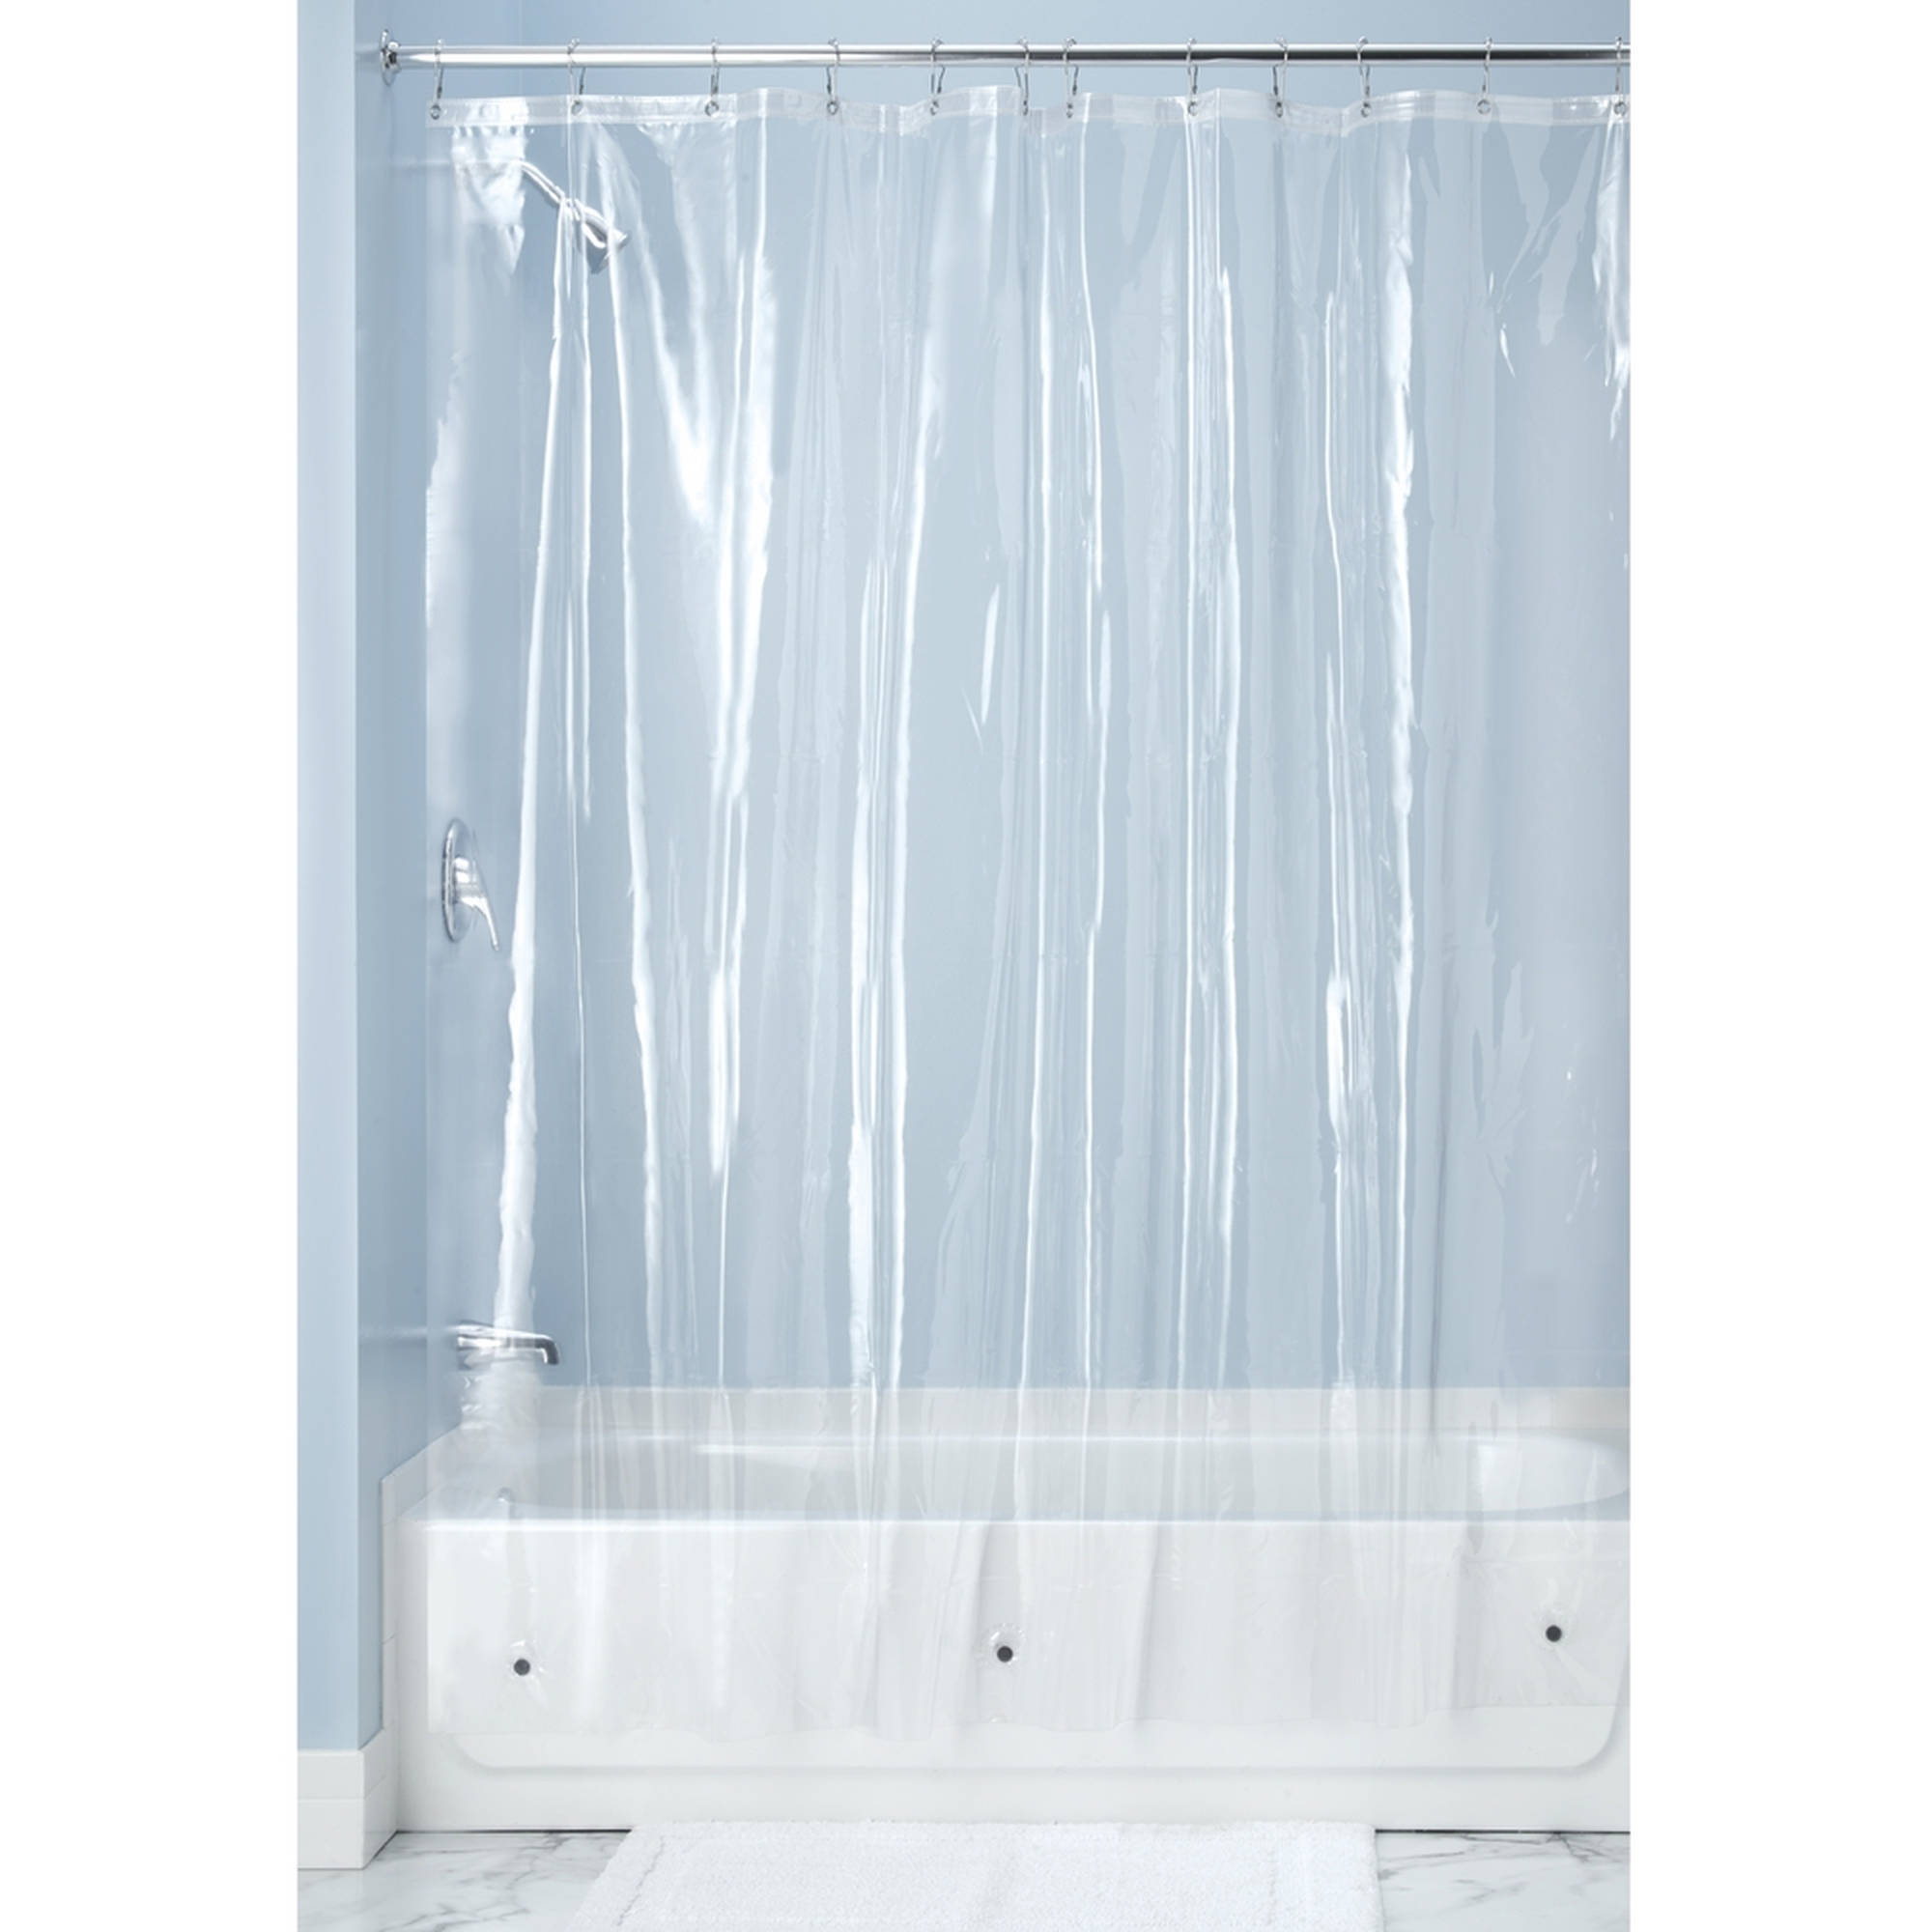 InterDesign Antibacterial, Mold  And Mildew Free 10 Gauge Vinyl Shower  Curtain Liner,